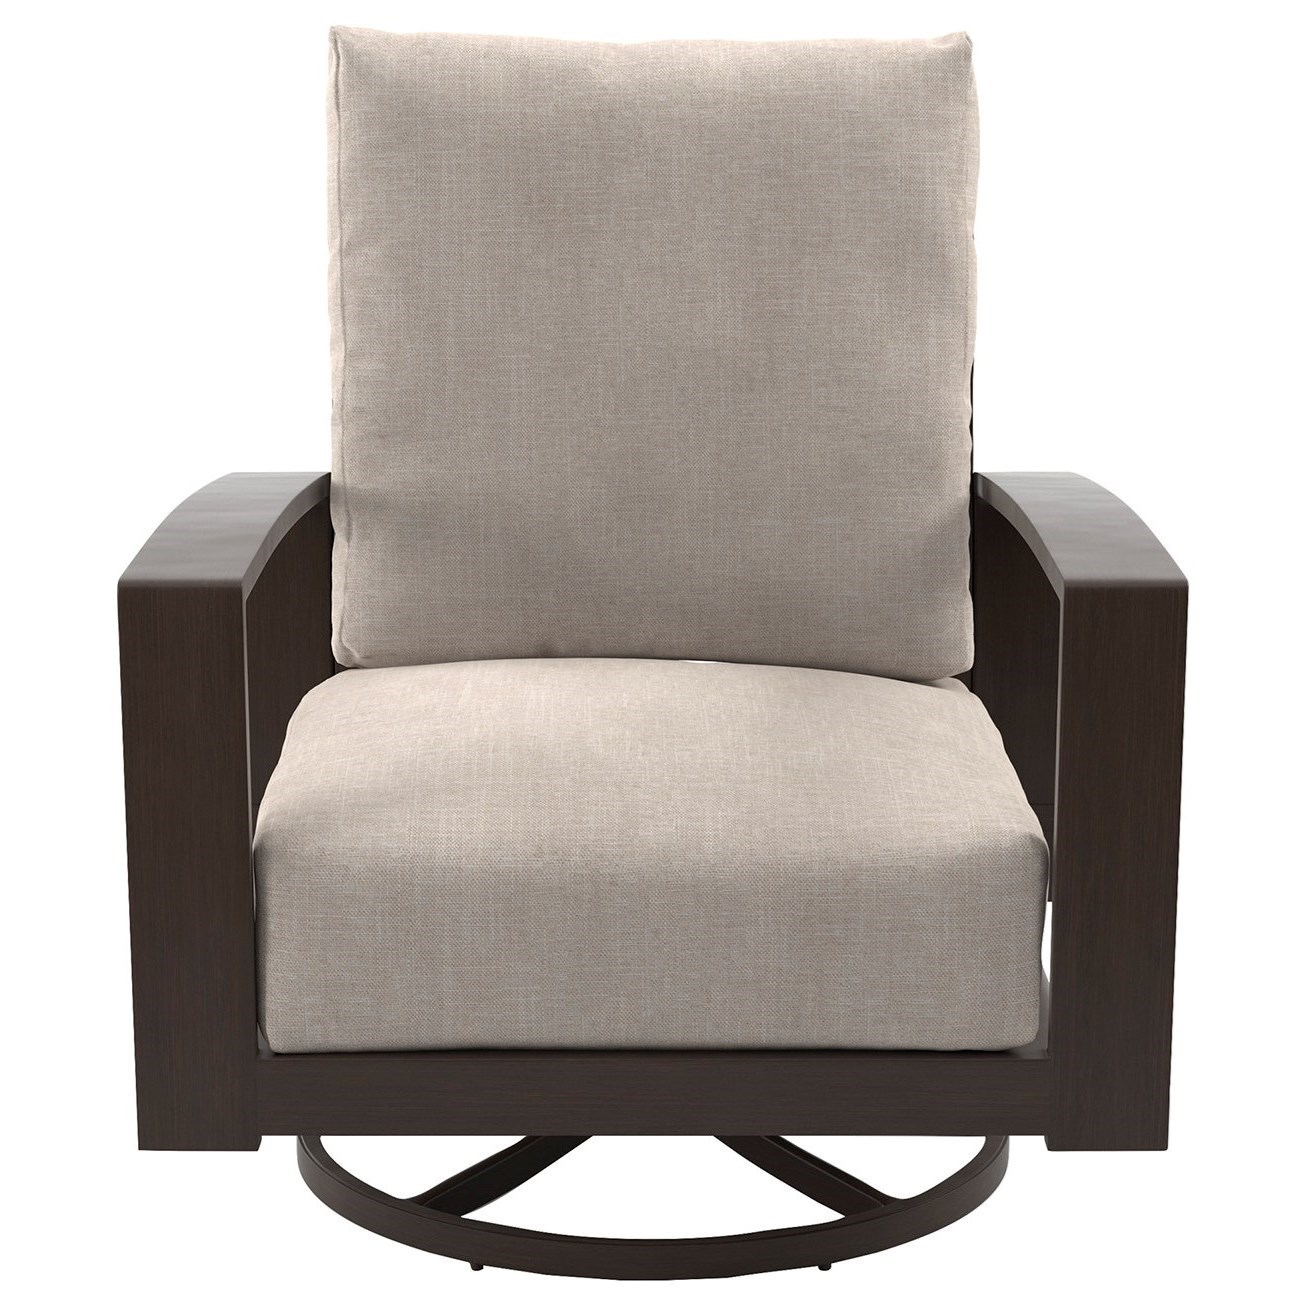 Ashley Chairs Cordova Reef Set Of 2 Swivel Lounge Chairs With Cushion By Signature Design By Ashley At Olinde S Furniture